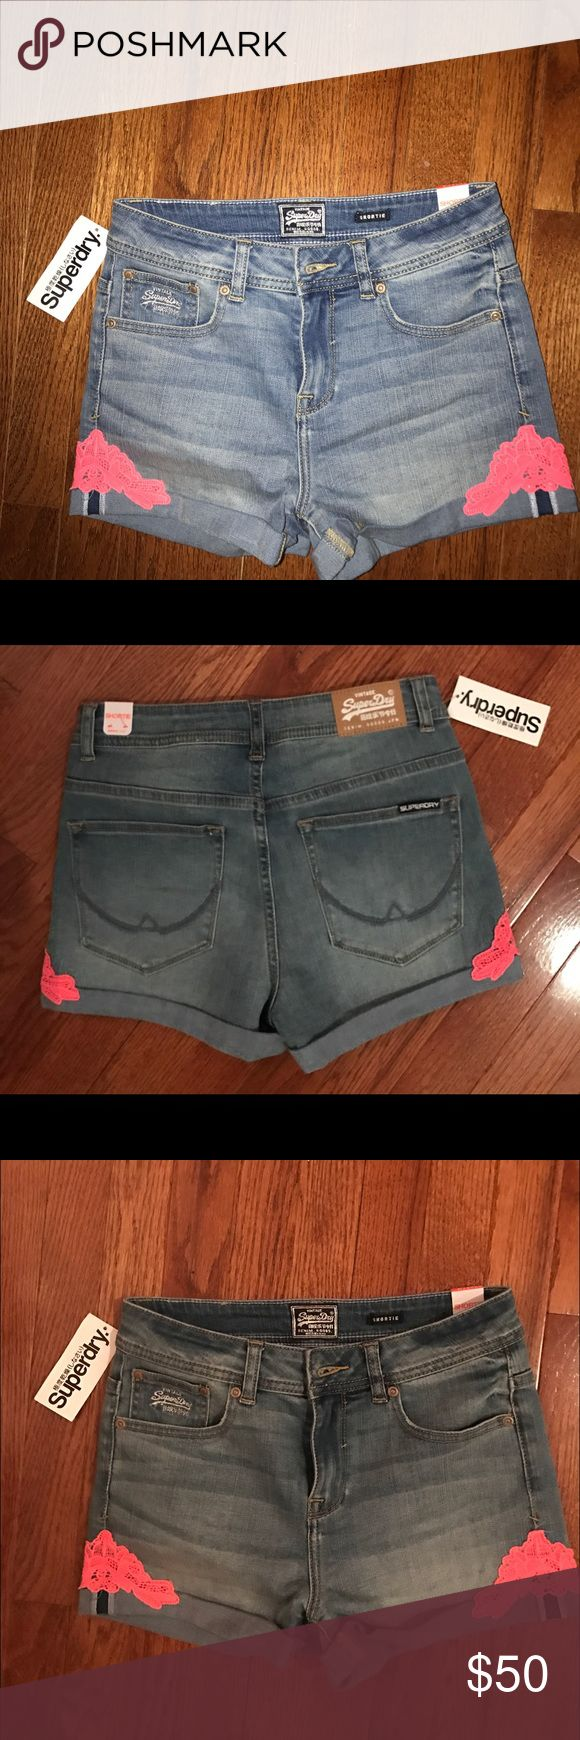 NWT superdry womens denim shorts size 28 Brand new shorts perfect for spring/summer Superdry Shorts Jean Shorts